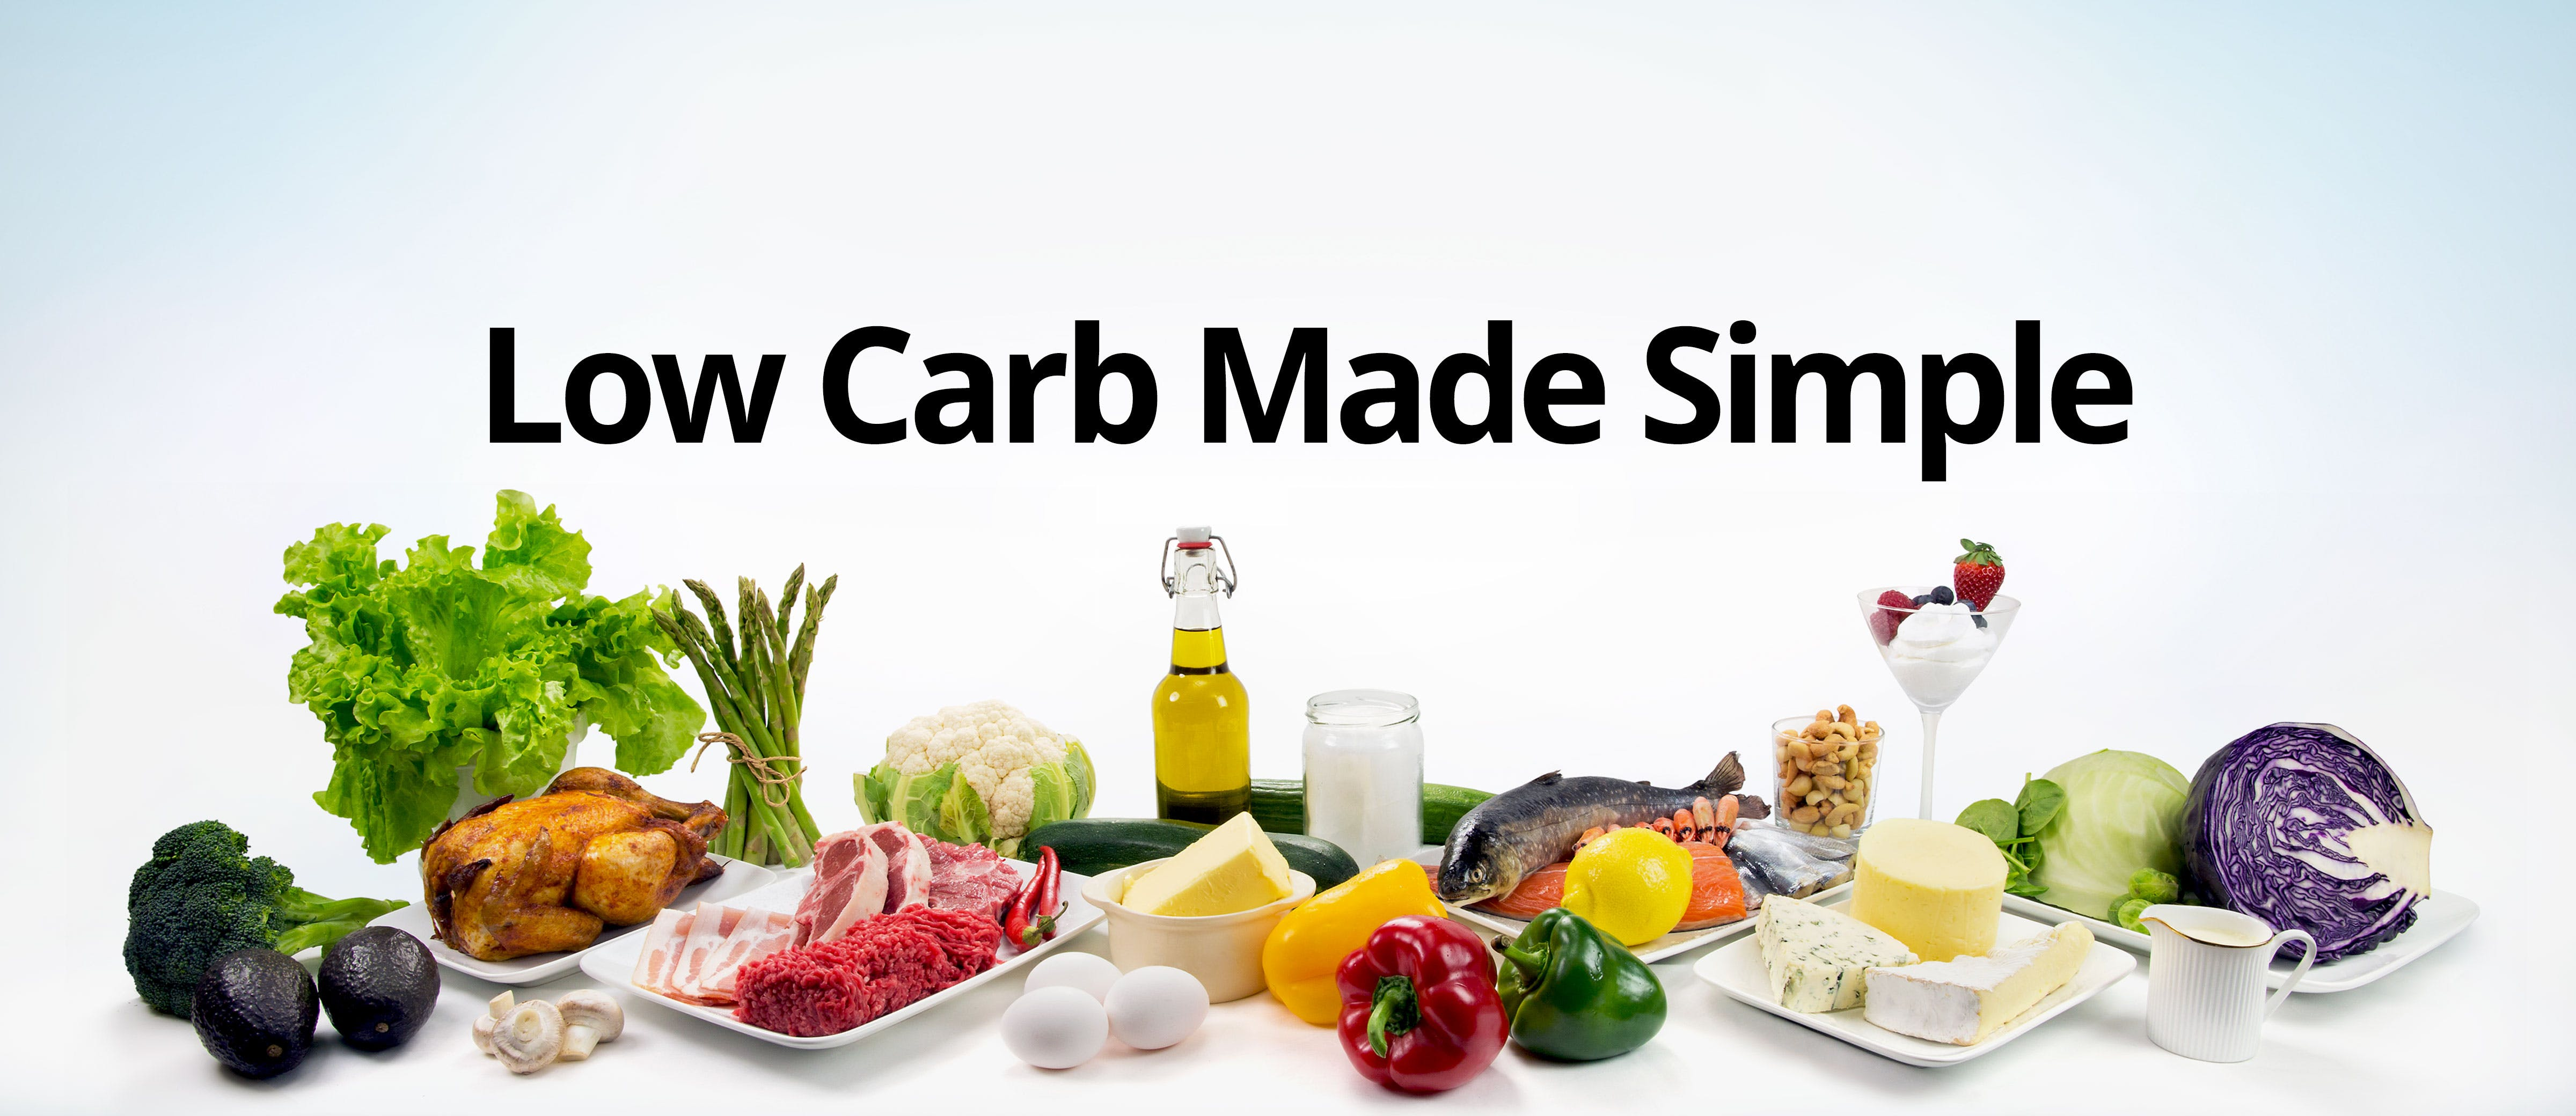 Low carb made simple